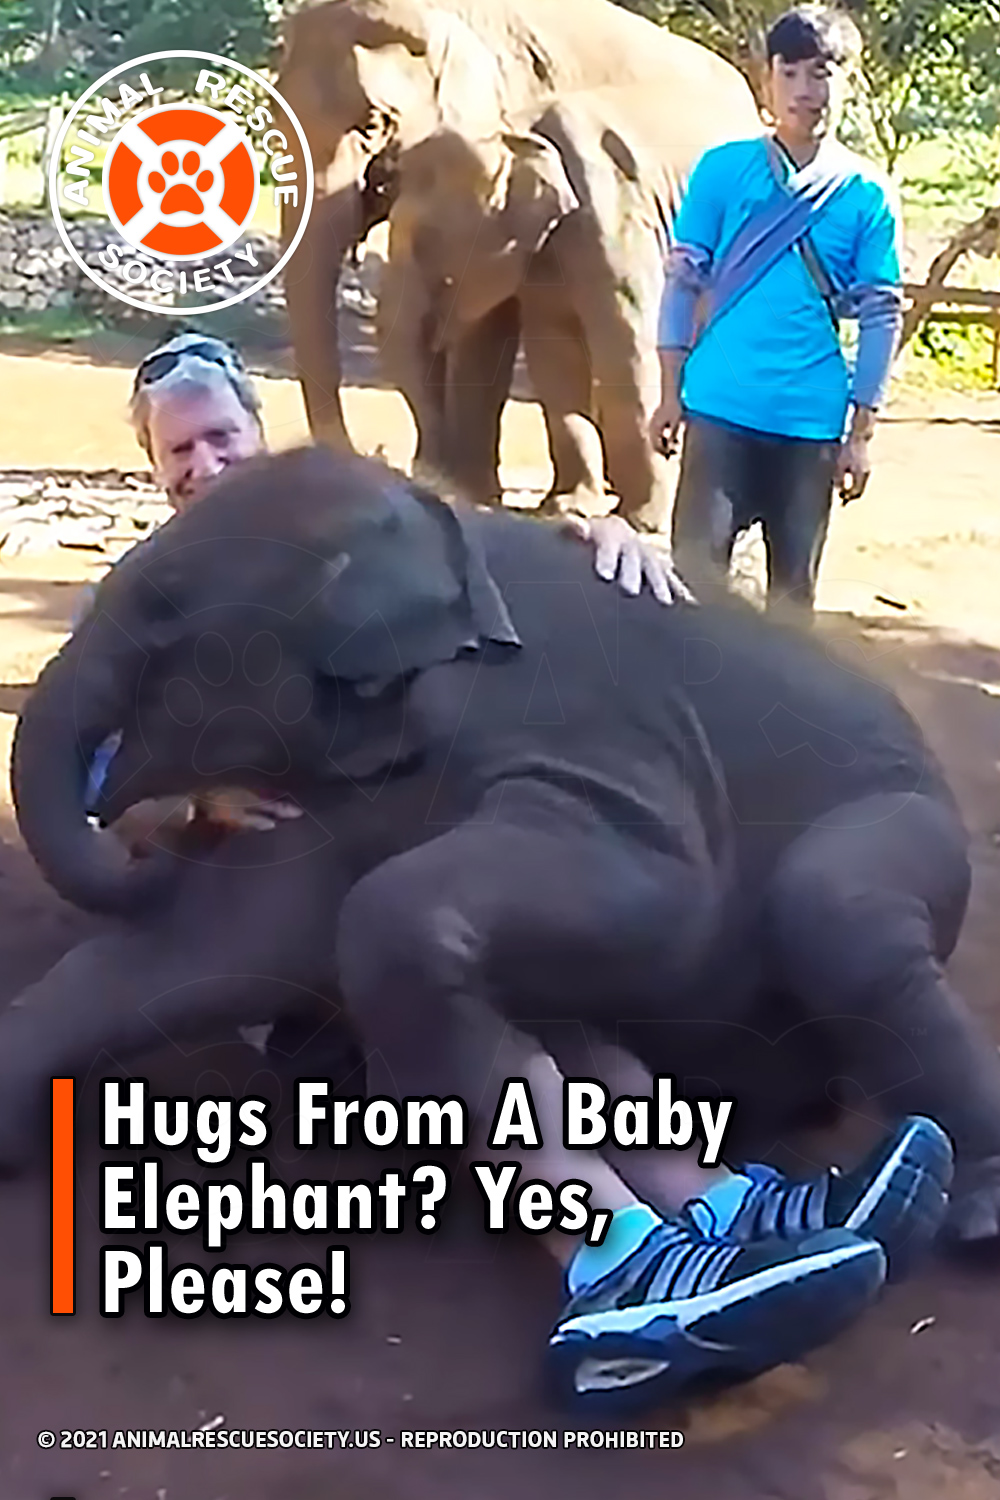 Hugs From A Baby Elephant? Yes, Please!